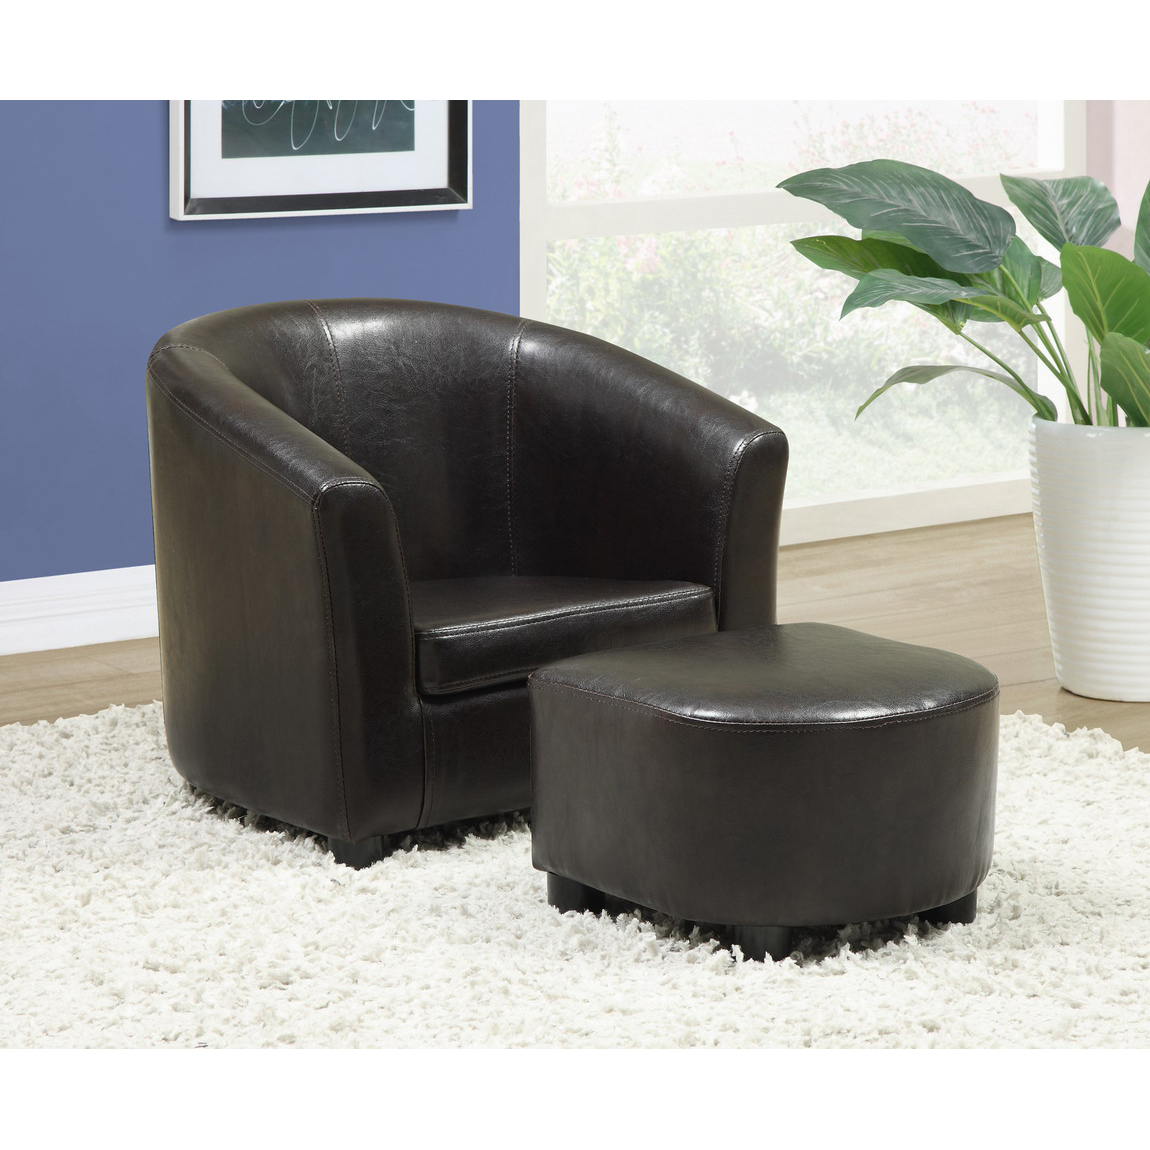 furniture: alluring leather chair and ottoman for cozy home